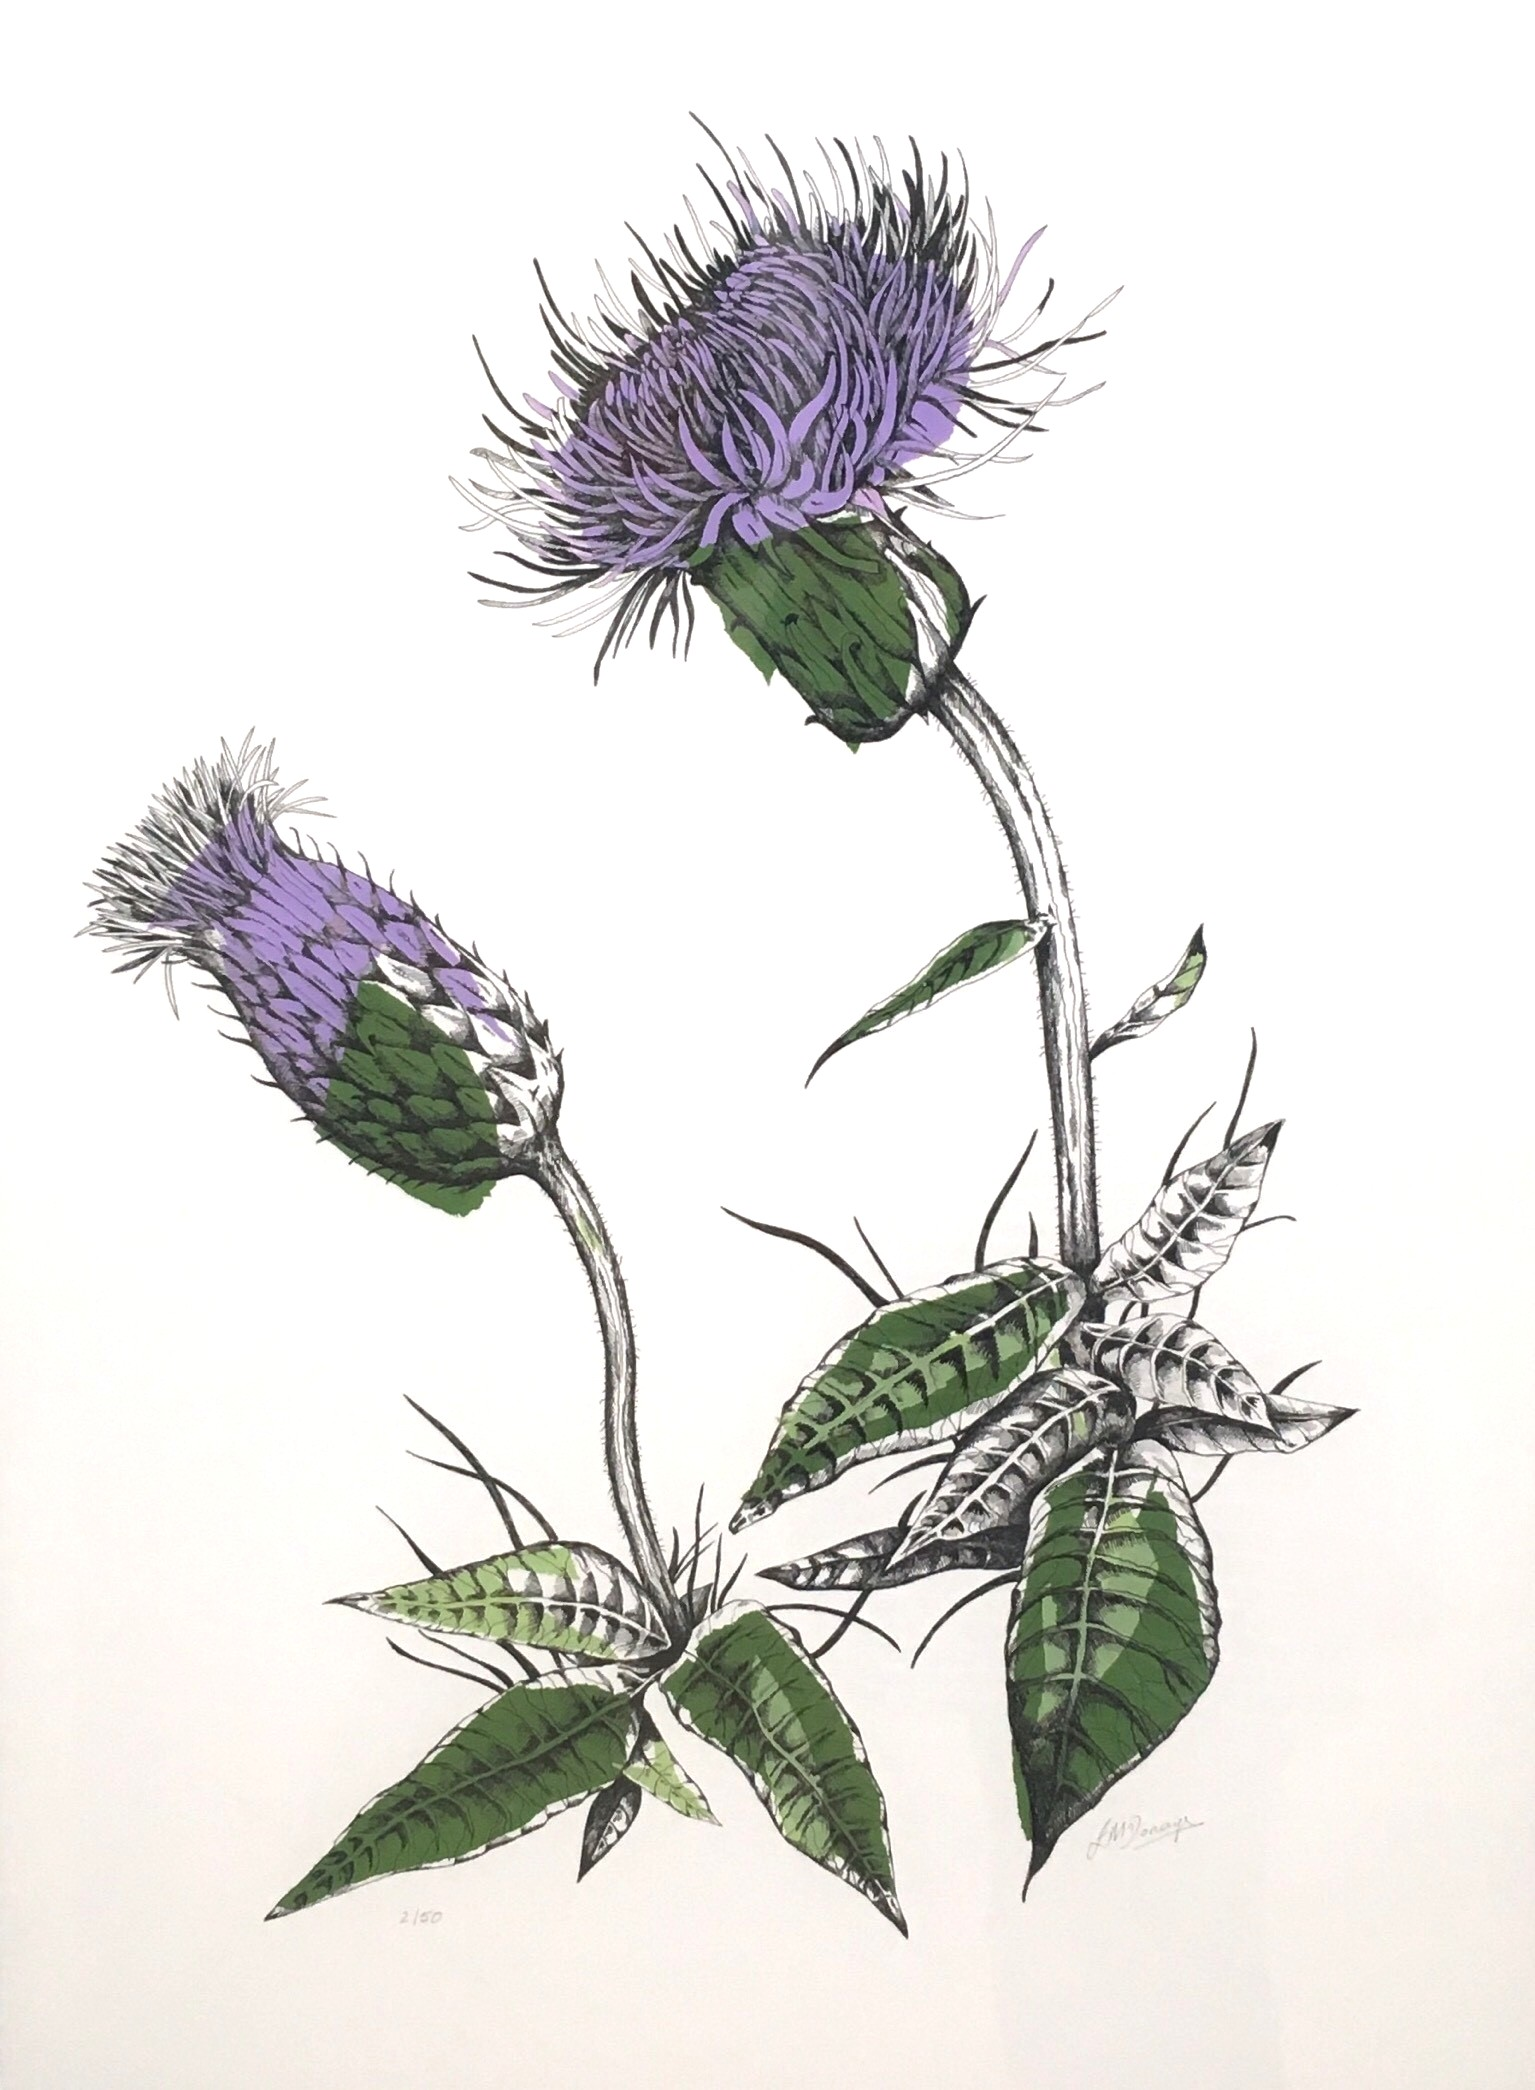 'Melancholy Thistle' by artist Joanna Mcdonough